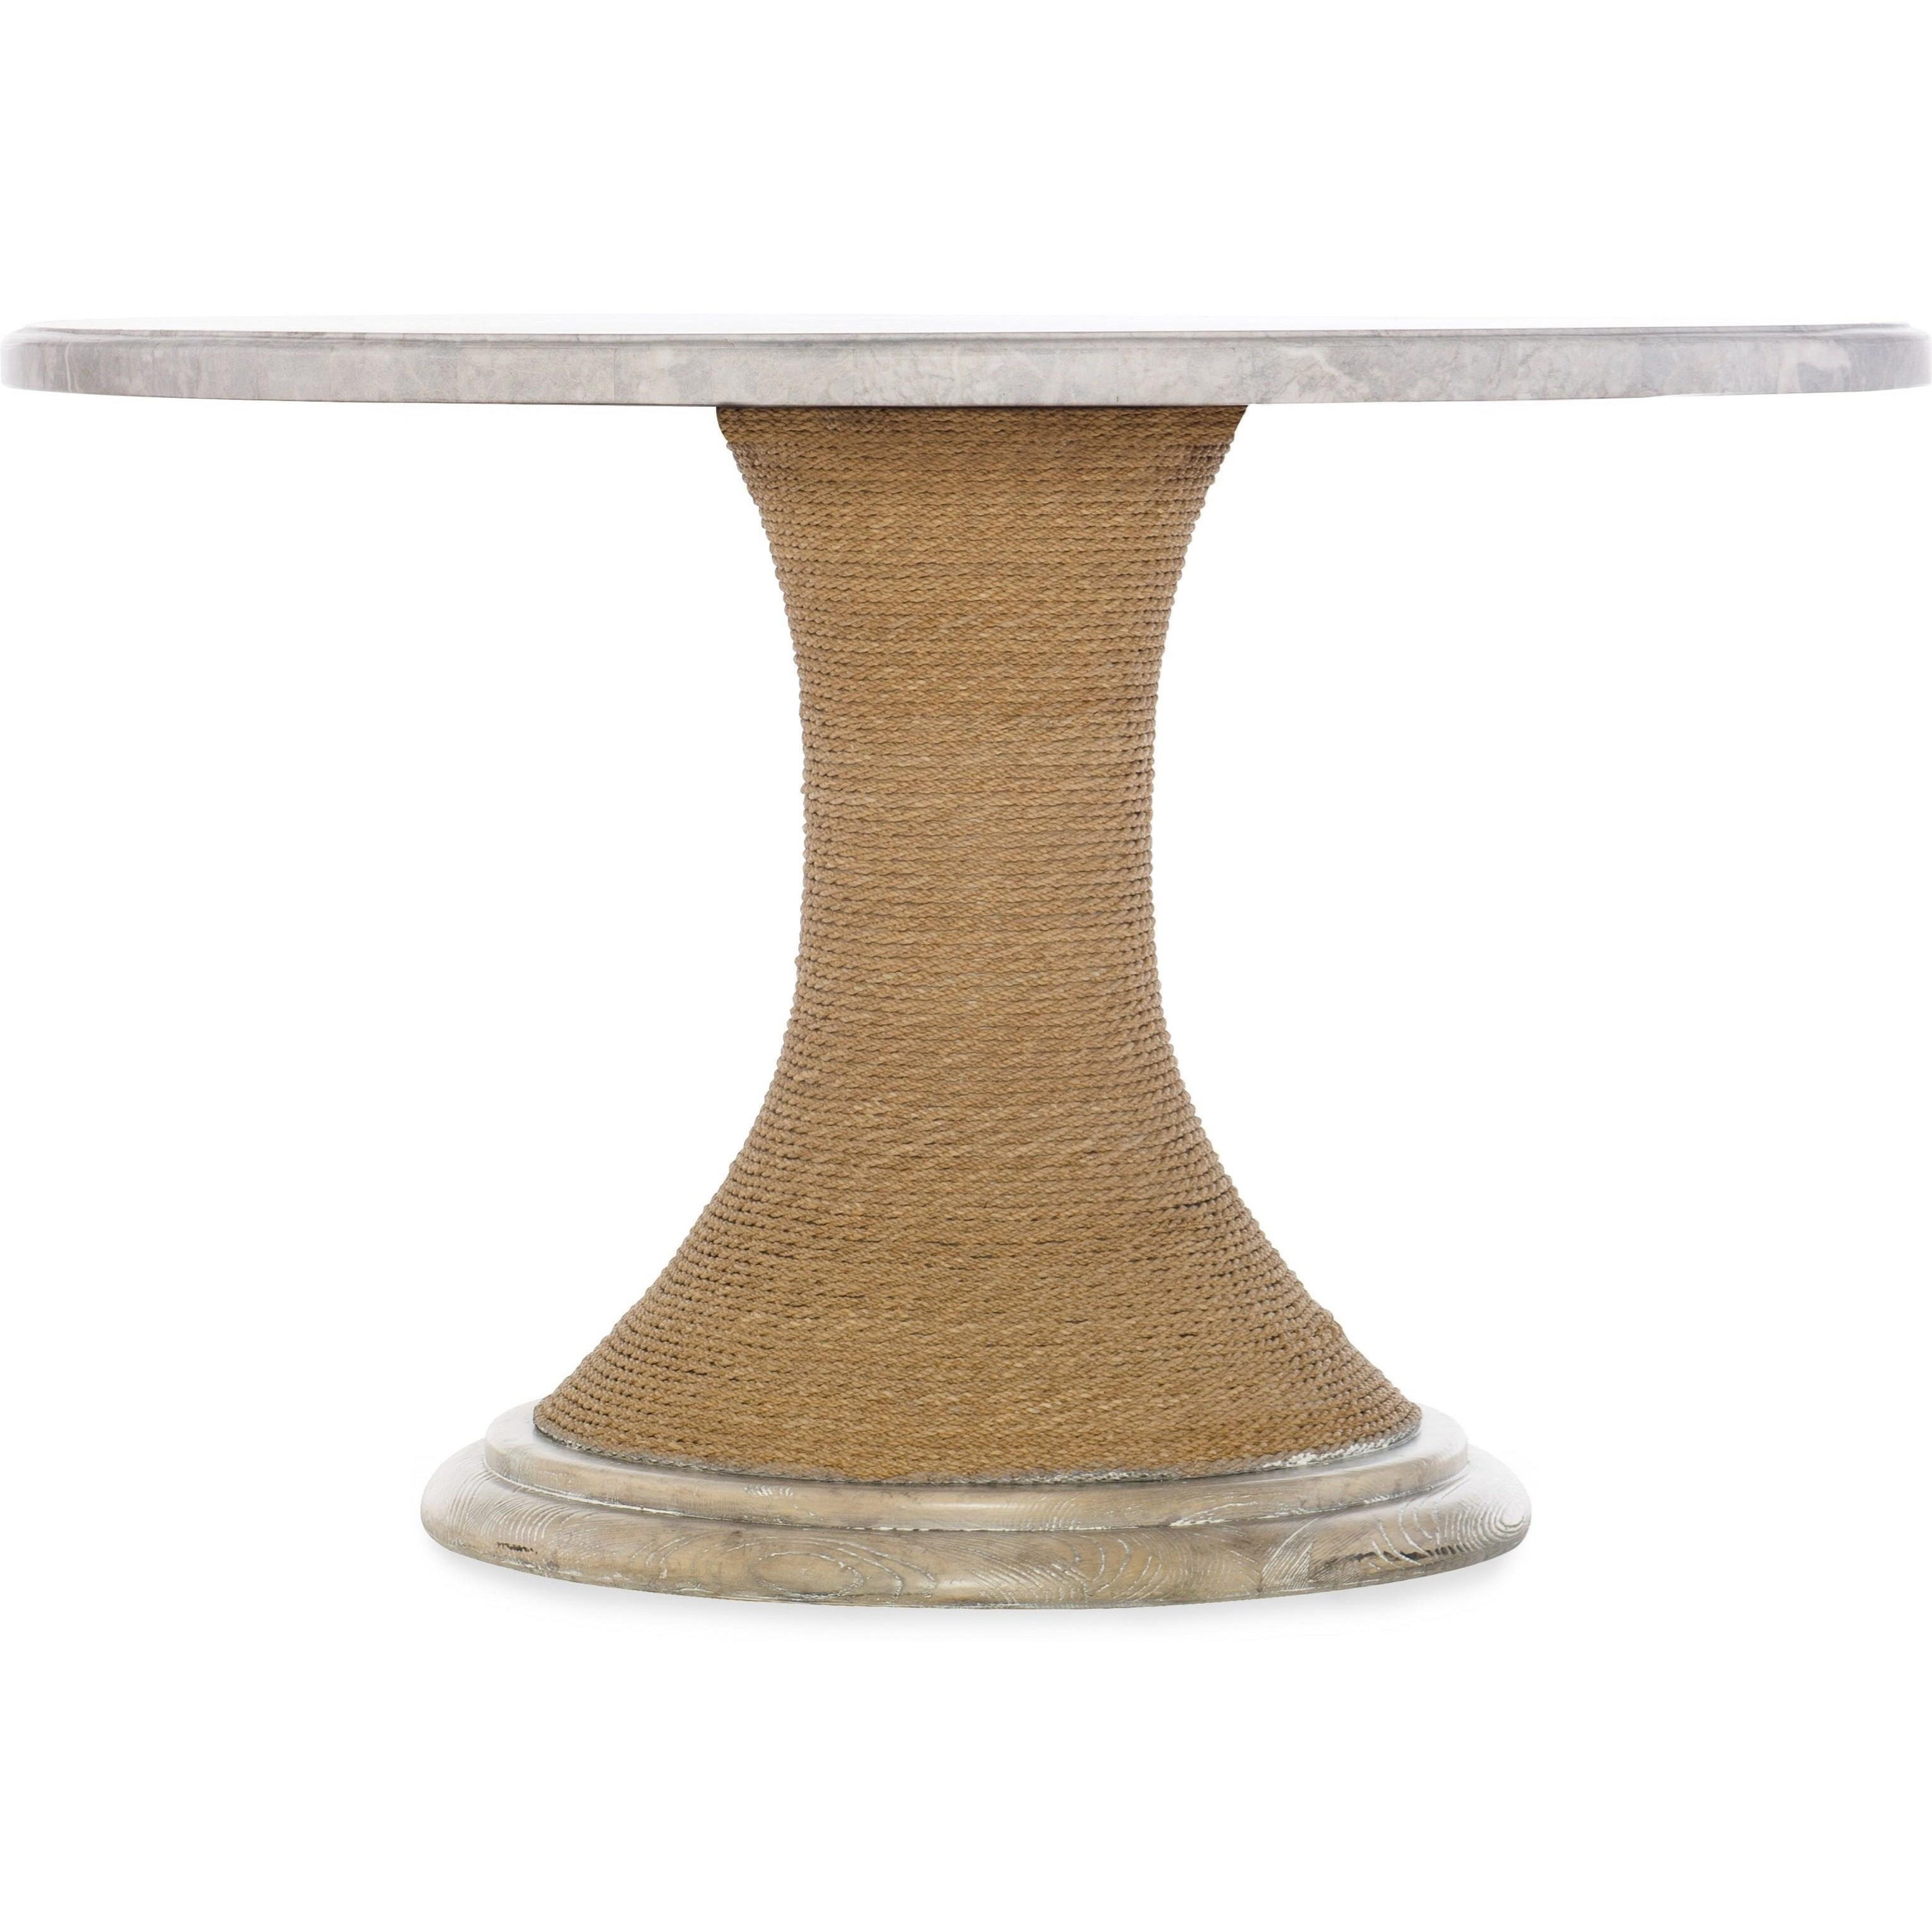 48-inch Round Pedestal Dining Table